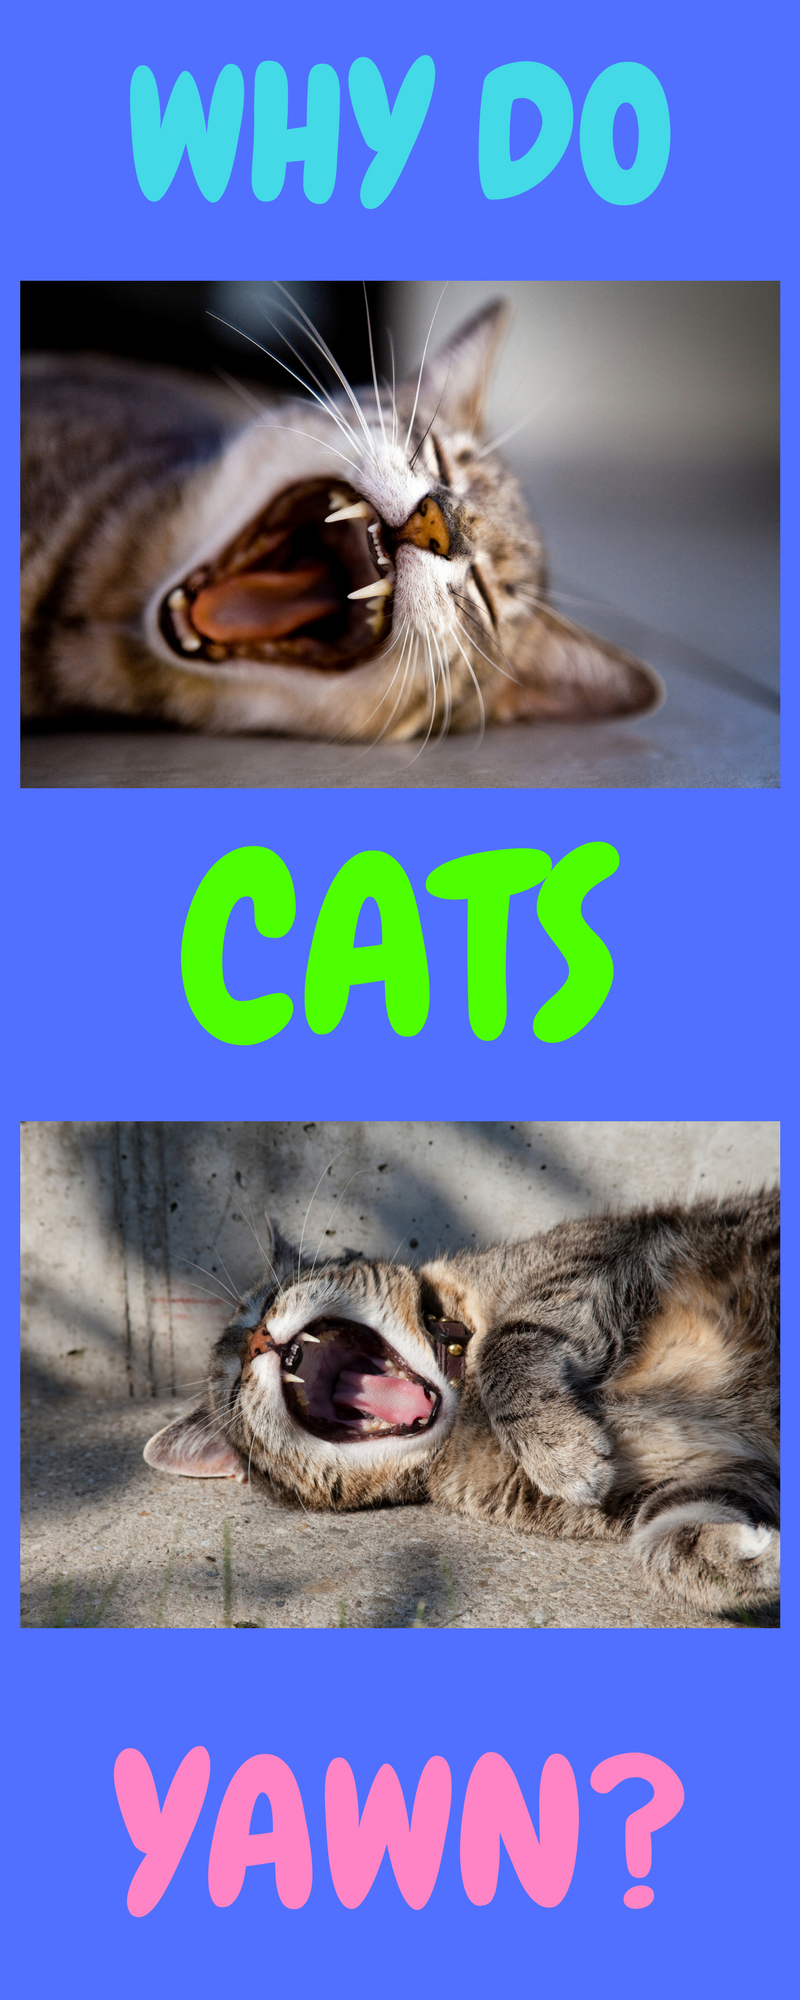 13 Cats Yawning Why Do Cats Yawn So Much? Cat